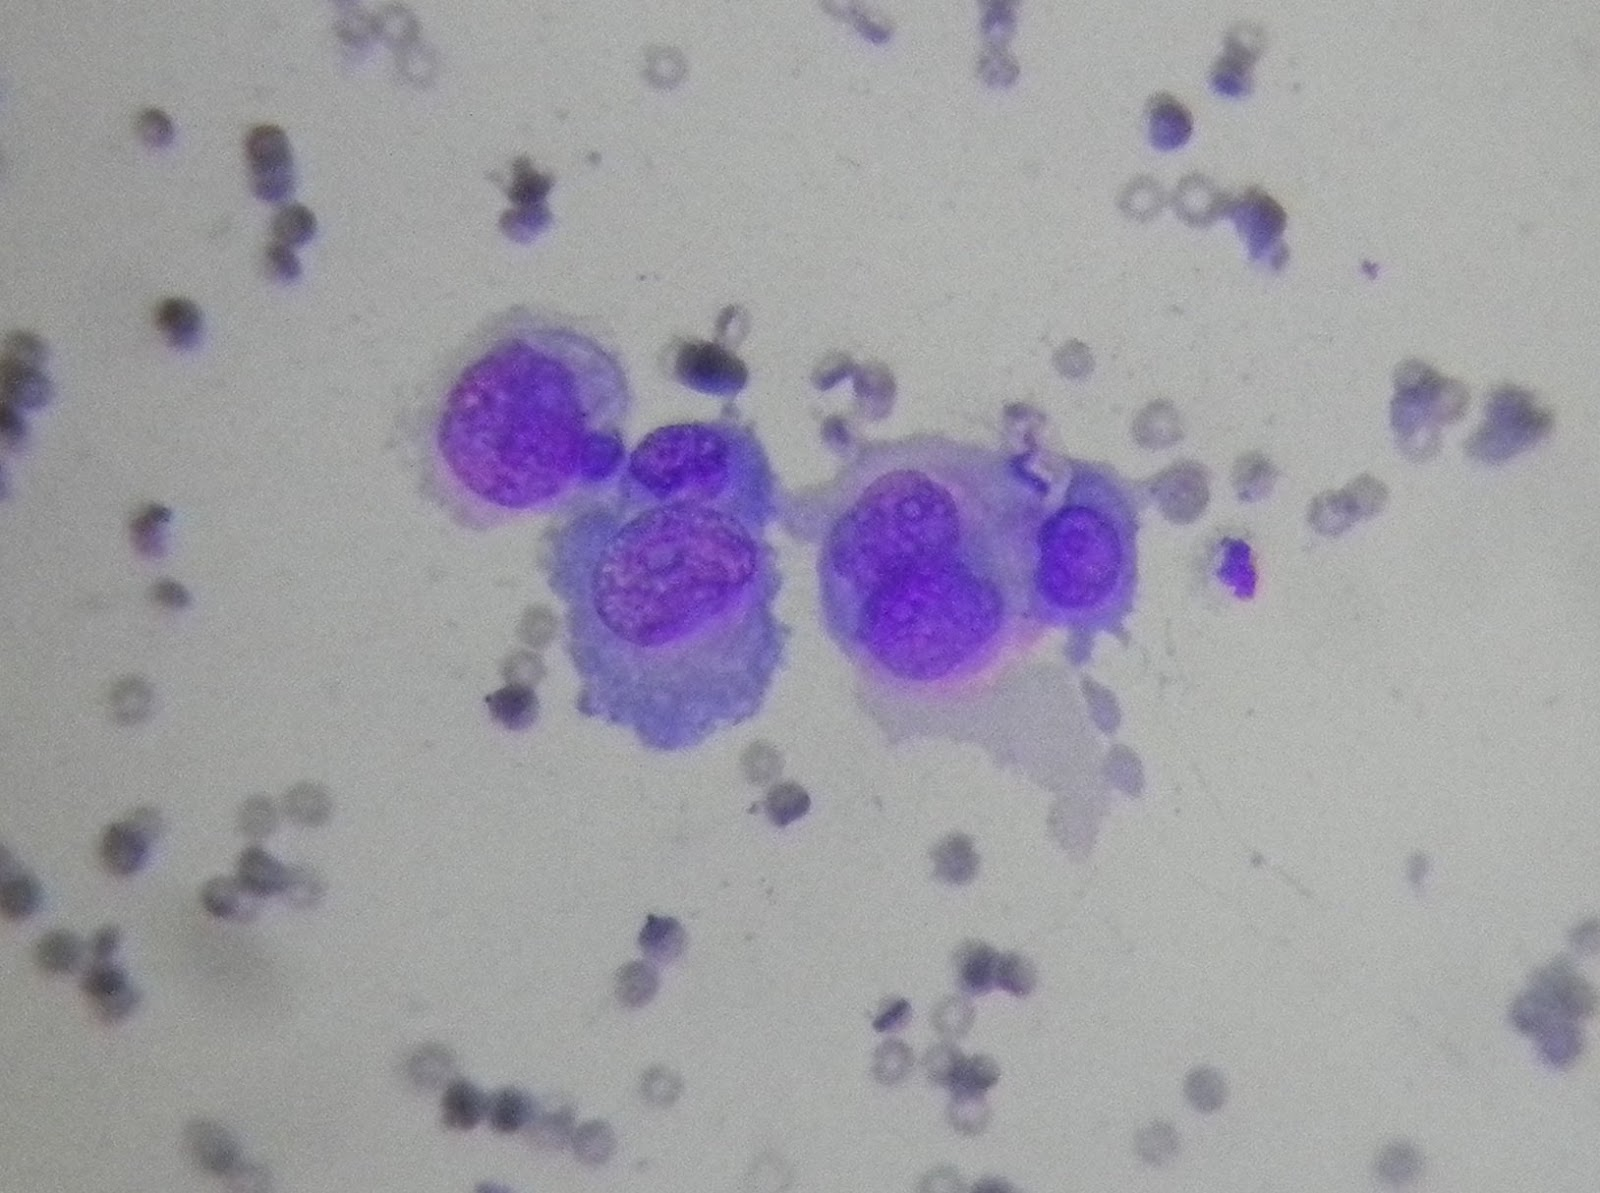 Lung cytology